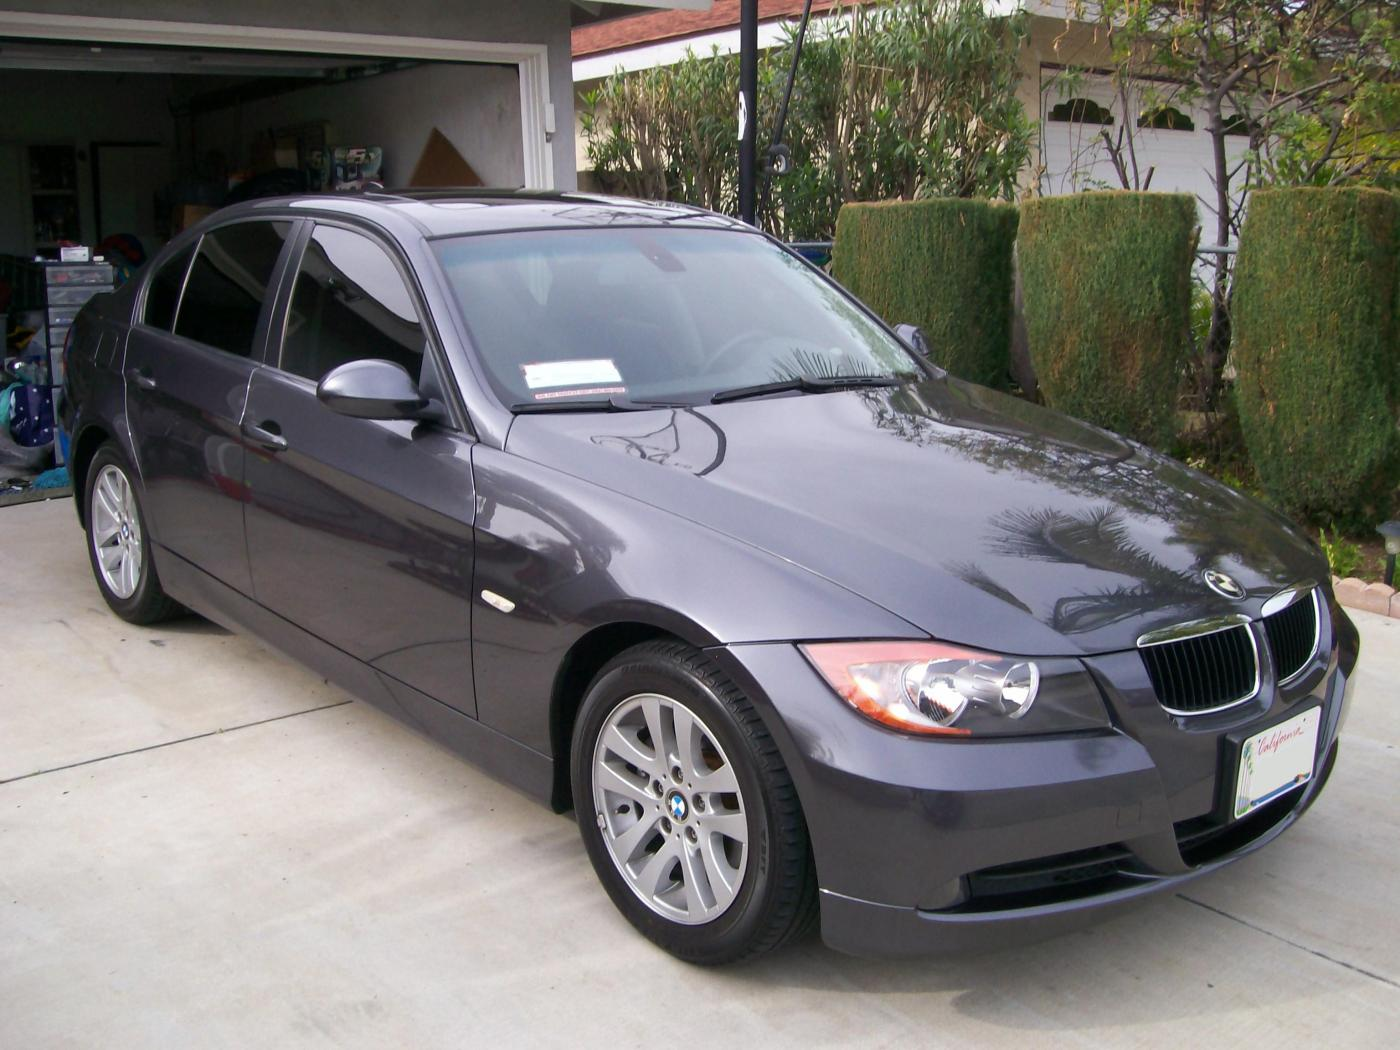 fs 2006 bmw 325i e90 manual transmission. Black Bedroom Furniture Sets. Home Design Ideas